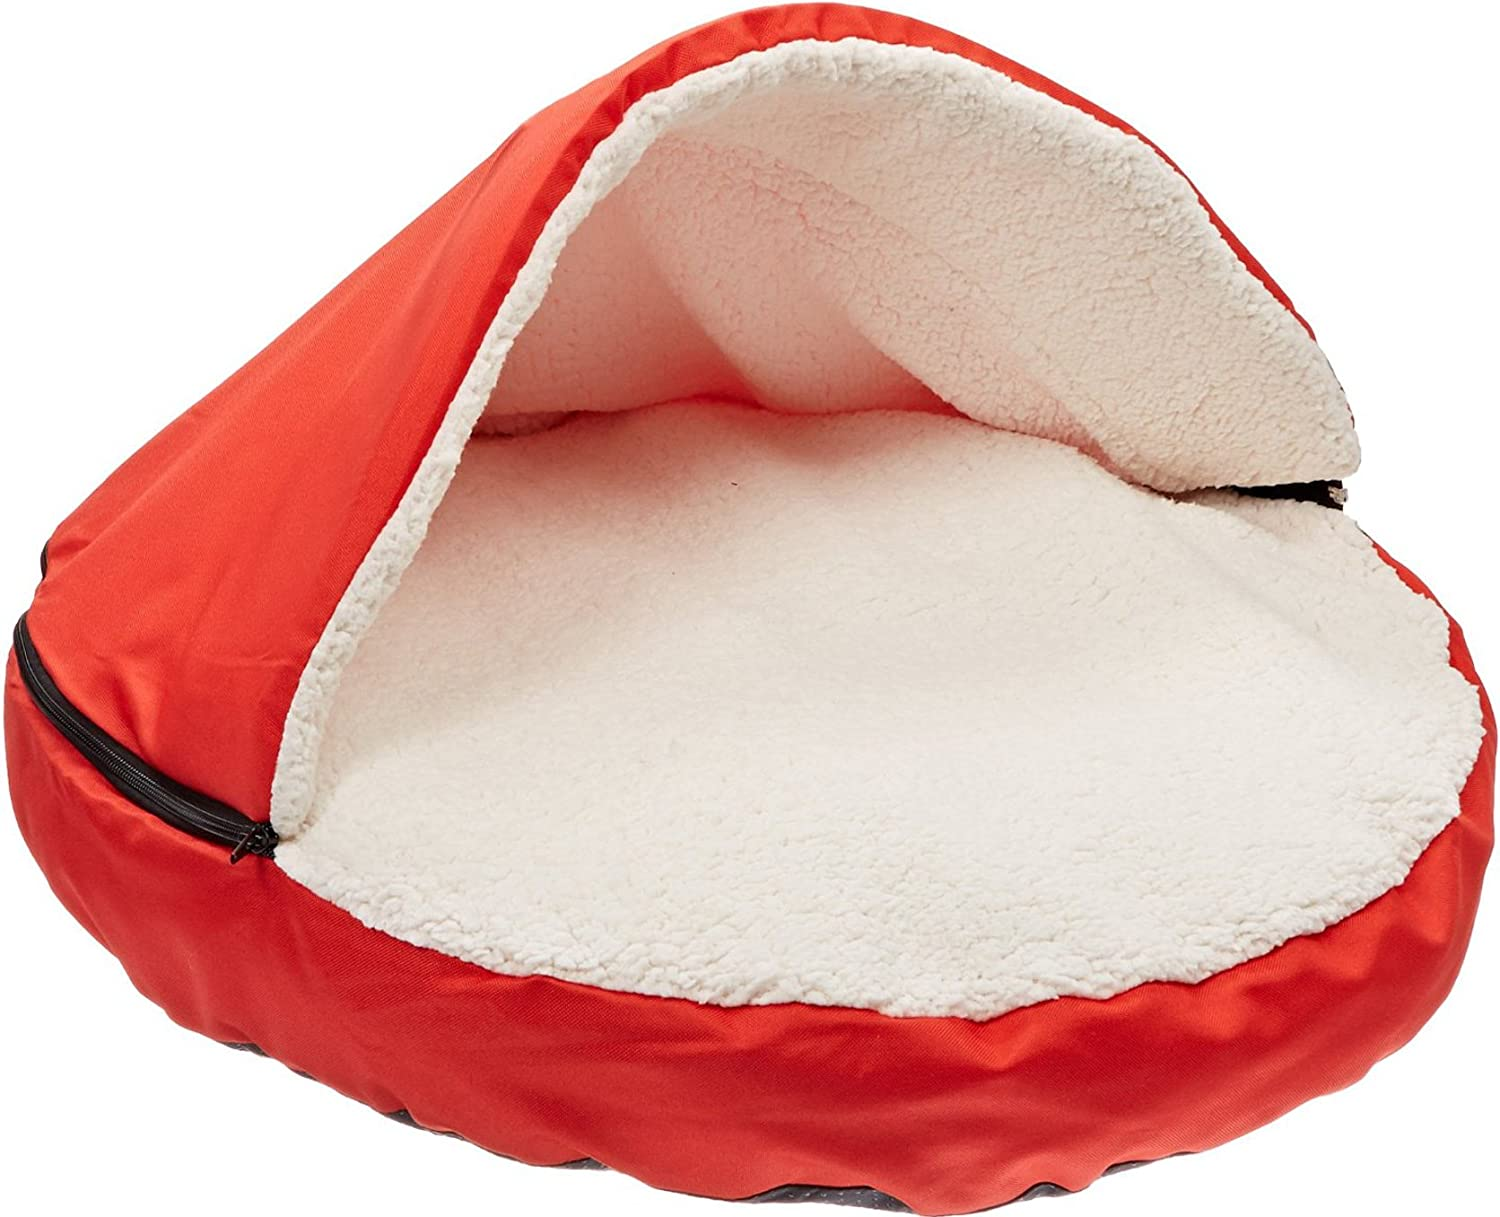 Amazon : Sofantex Plush Pet Bed Cave For Cats And Small To Medium Size  Dogs And Cats, Red, 25